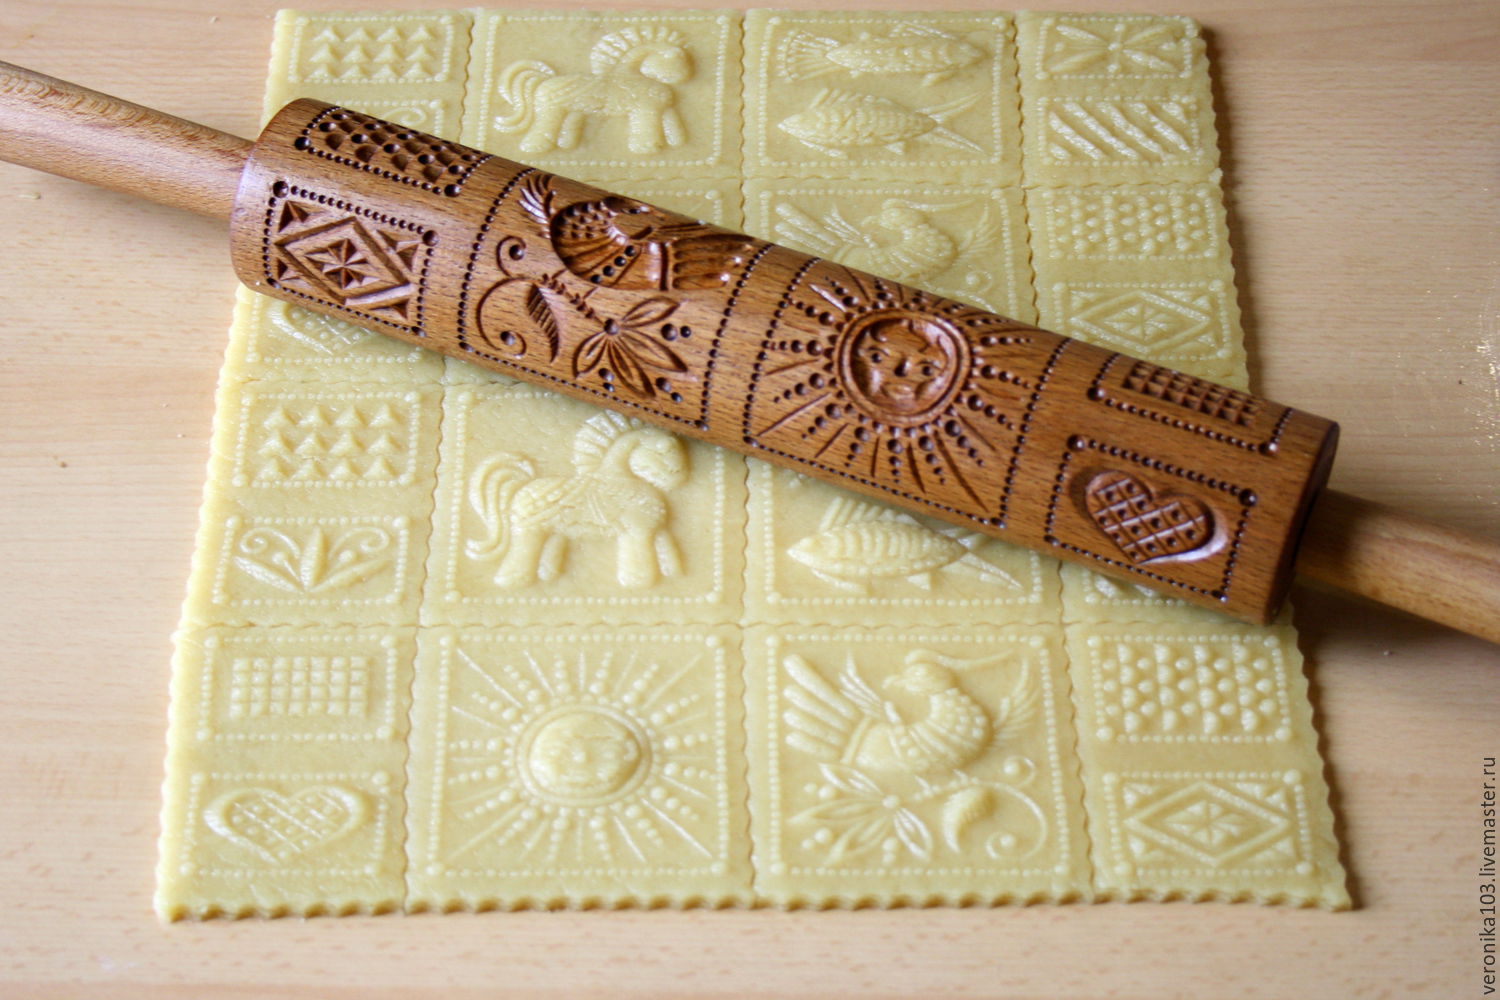 The Rolling Pin As A Gift For Mom Rustic Kitchen Home Decor Embossed Rolling Pin Shop Online